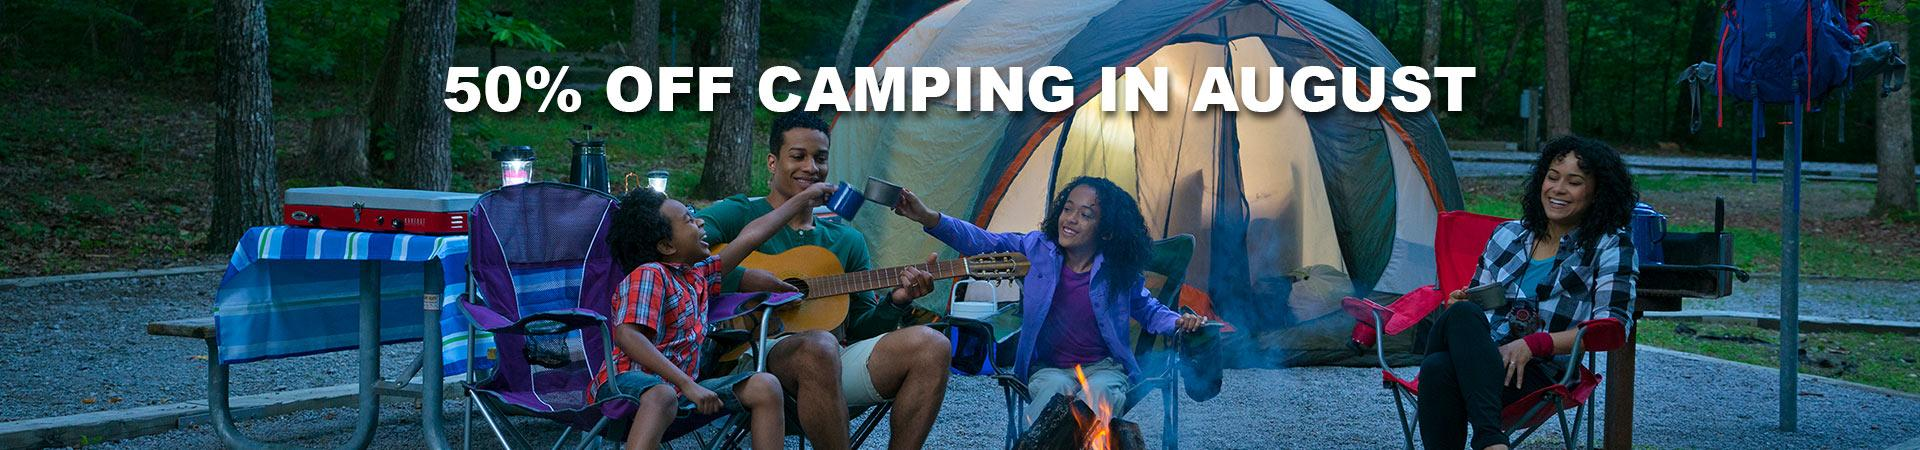 50% off camping in August